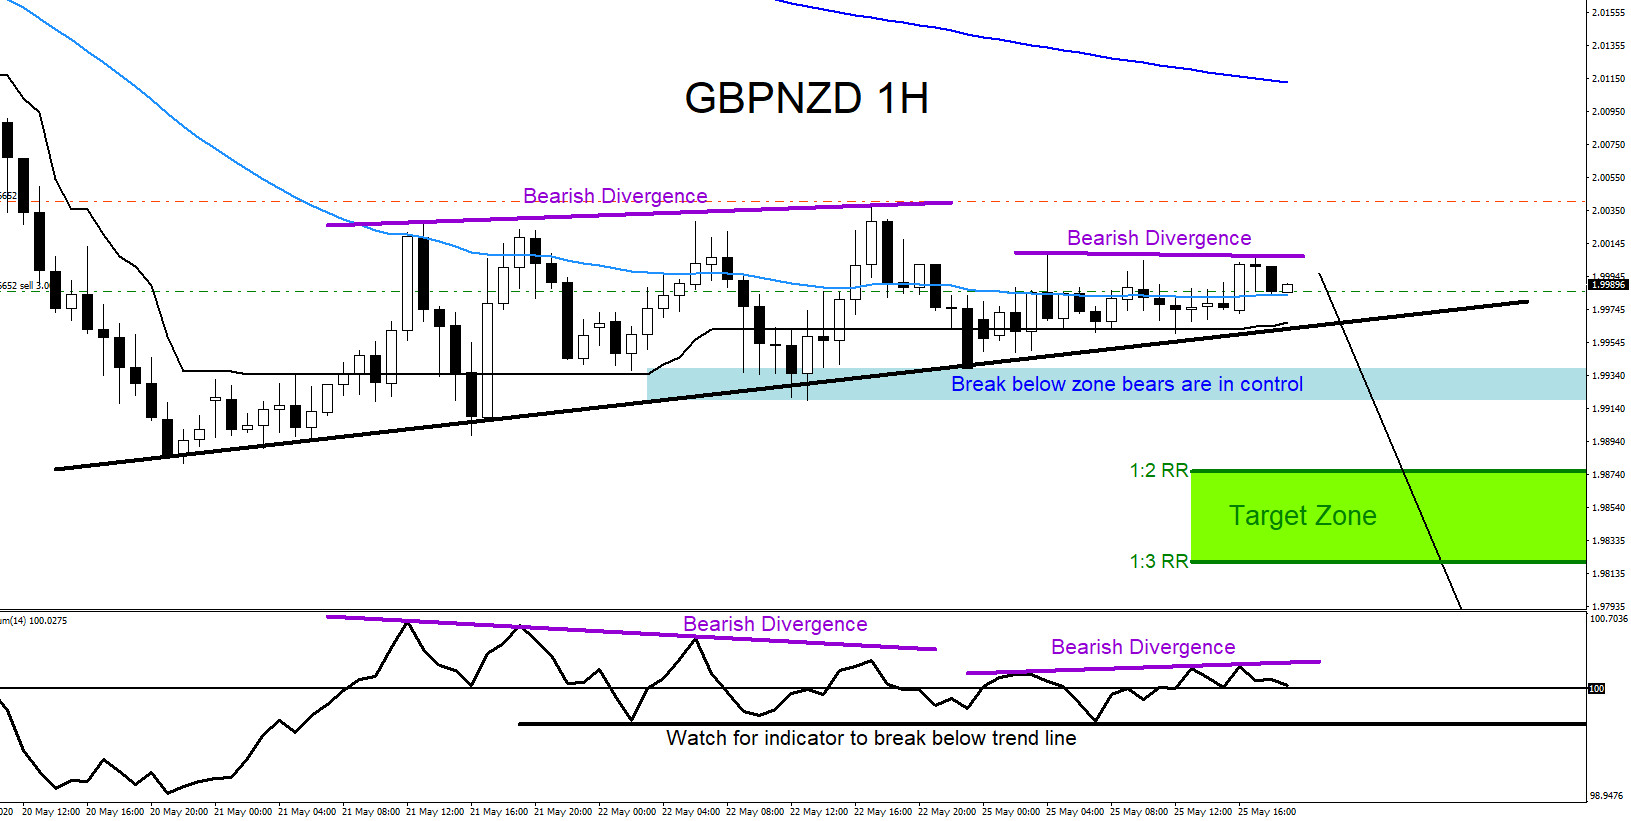 GBPNZD : Trading the Move Lower